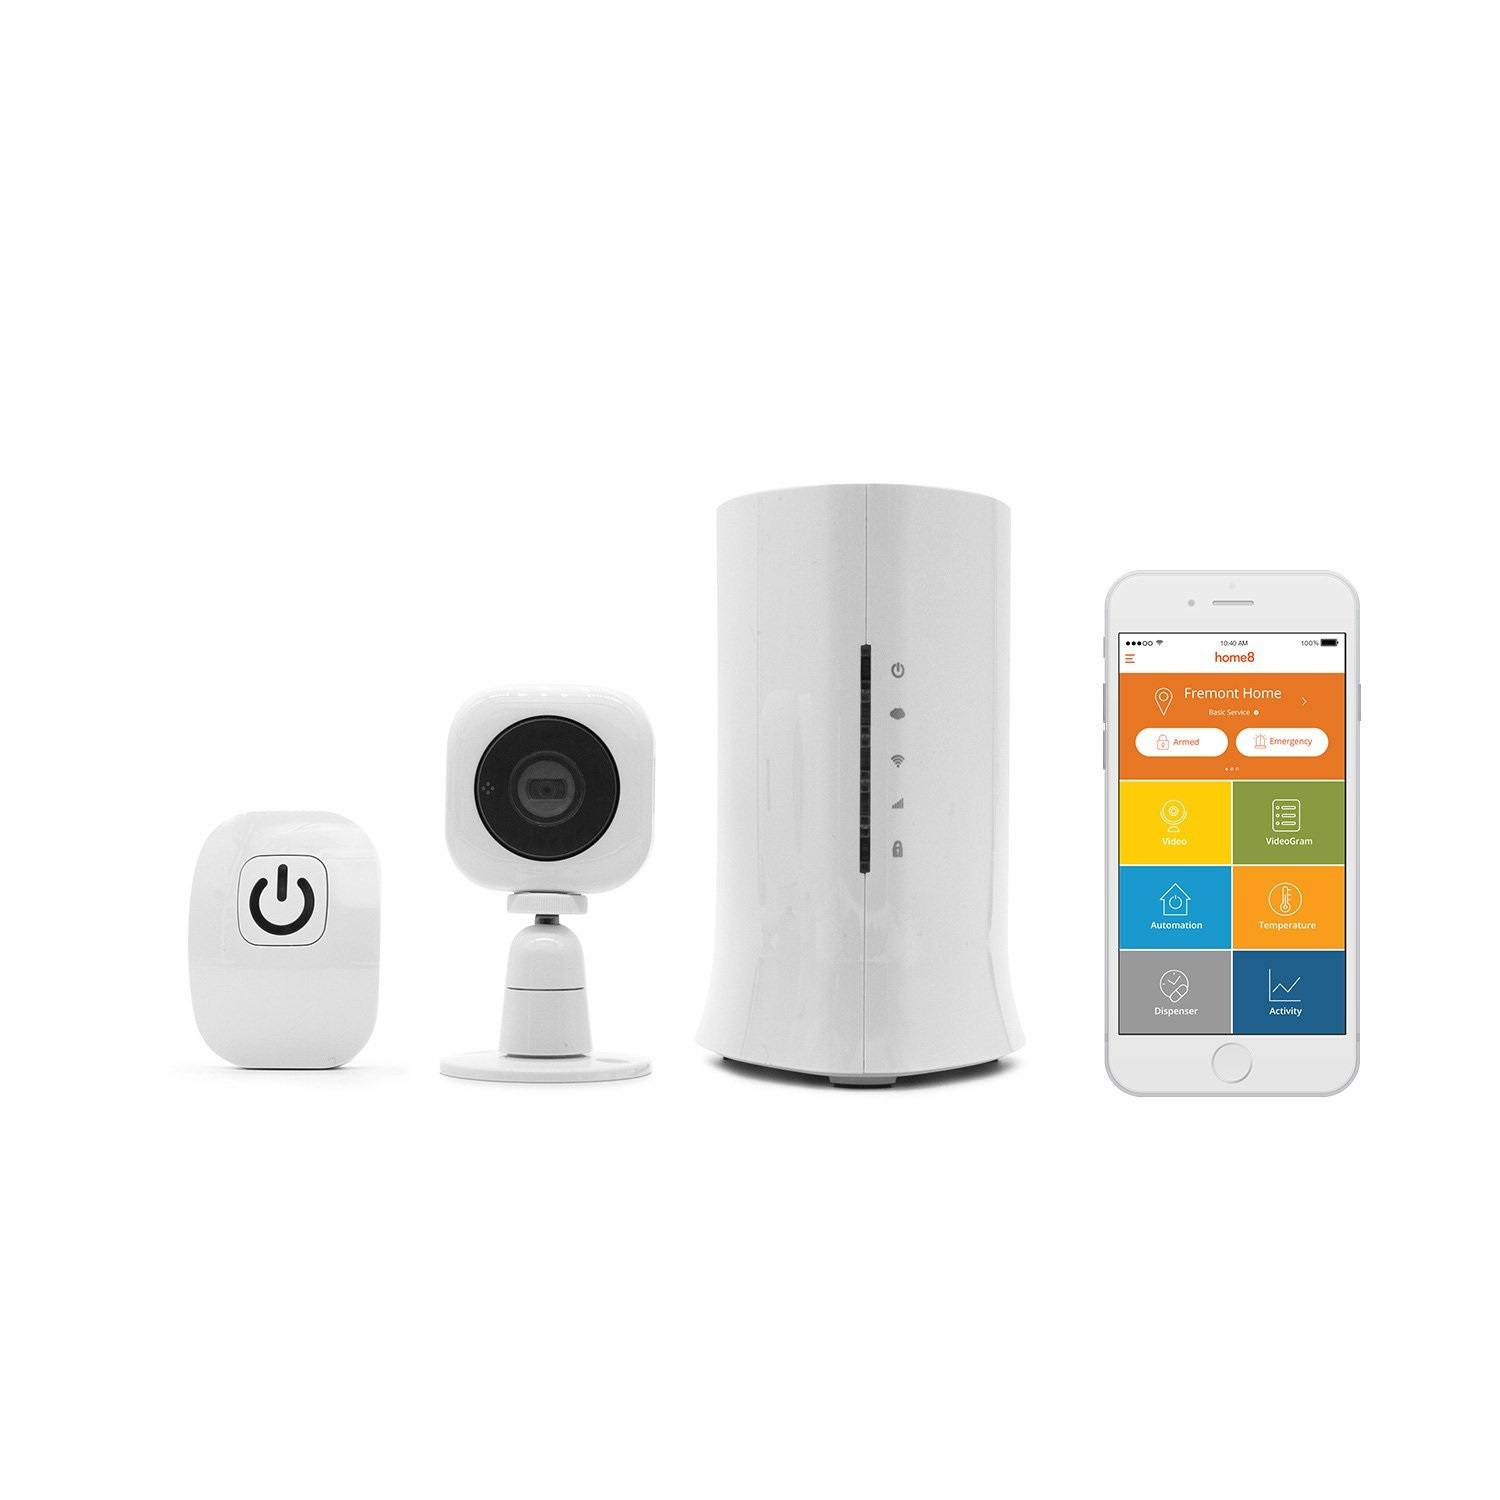 Sensor Smart Home Smart Home Sensors Security And Surveillance Cameras